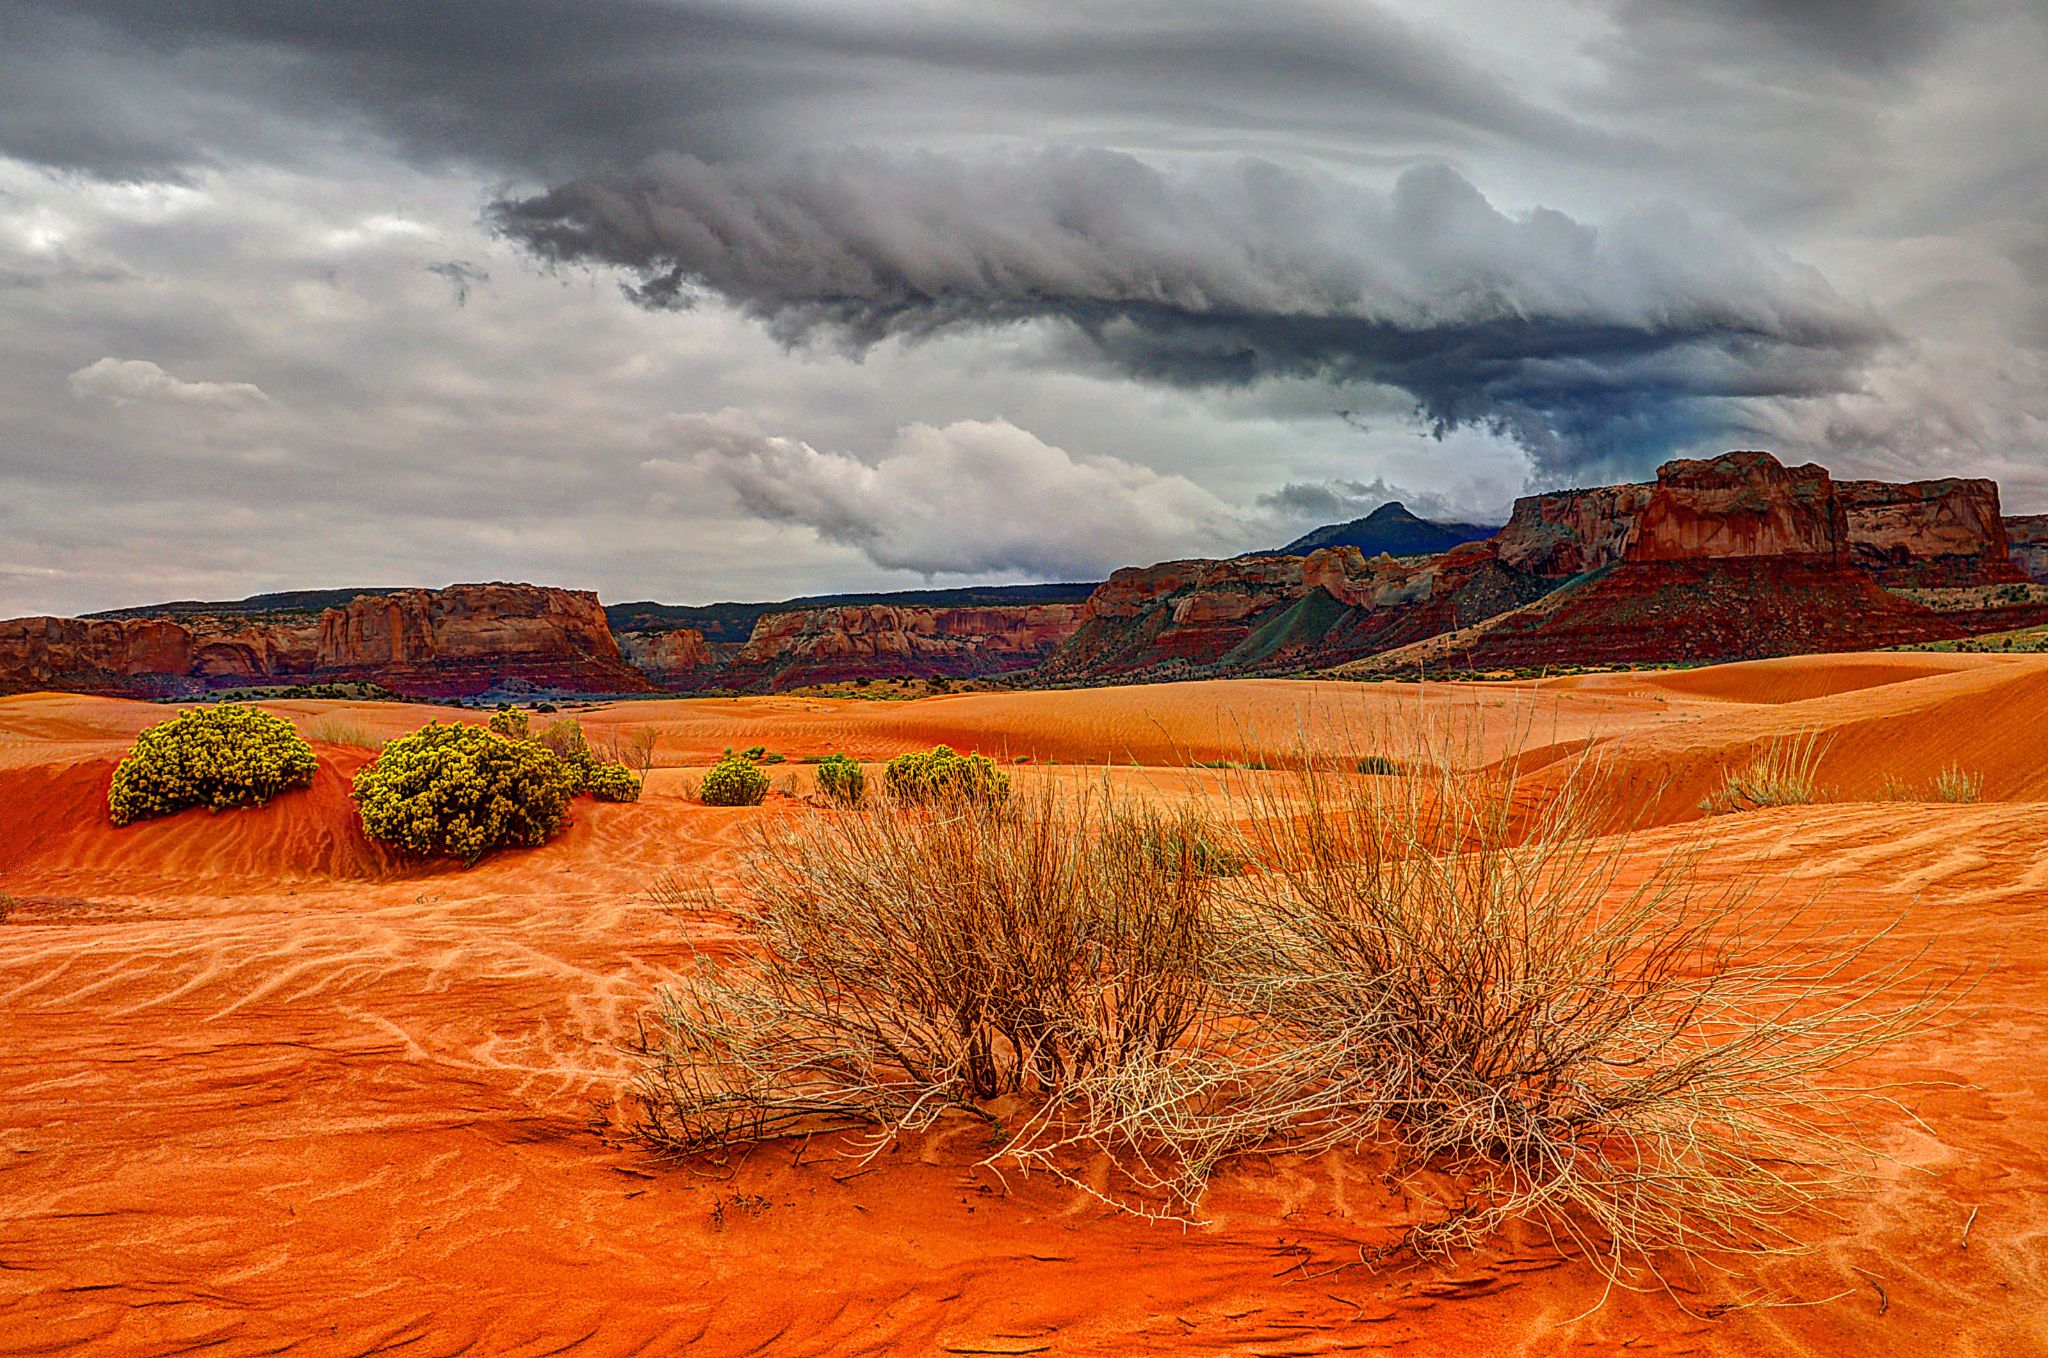 Storm over the Dunes by J. Philip Larson Photography